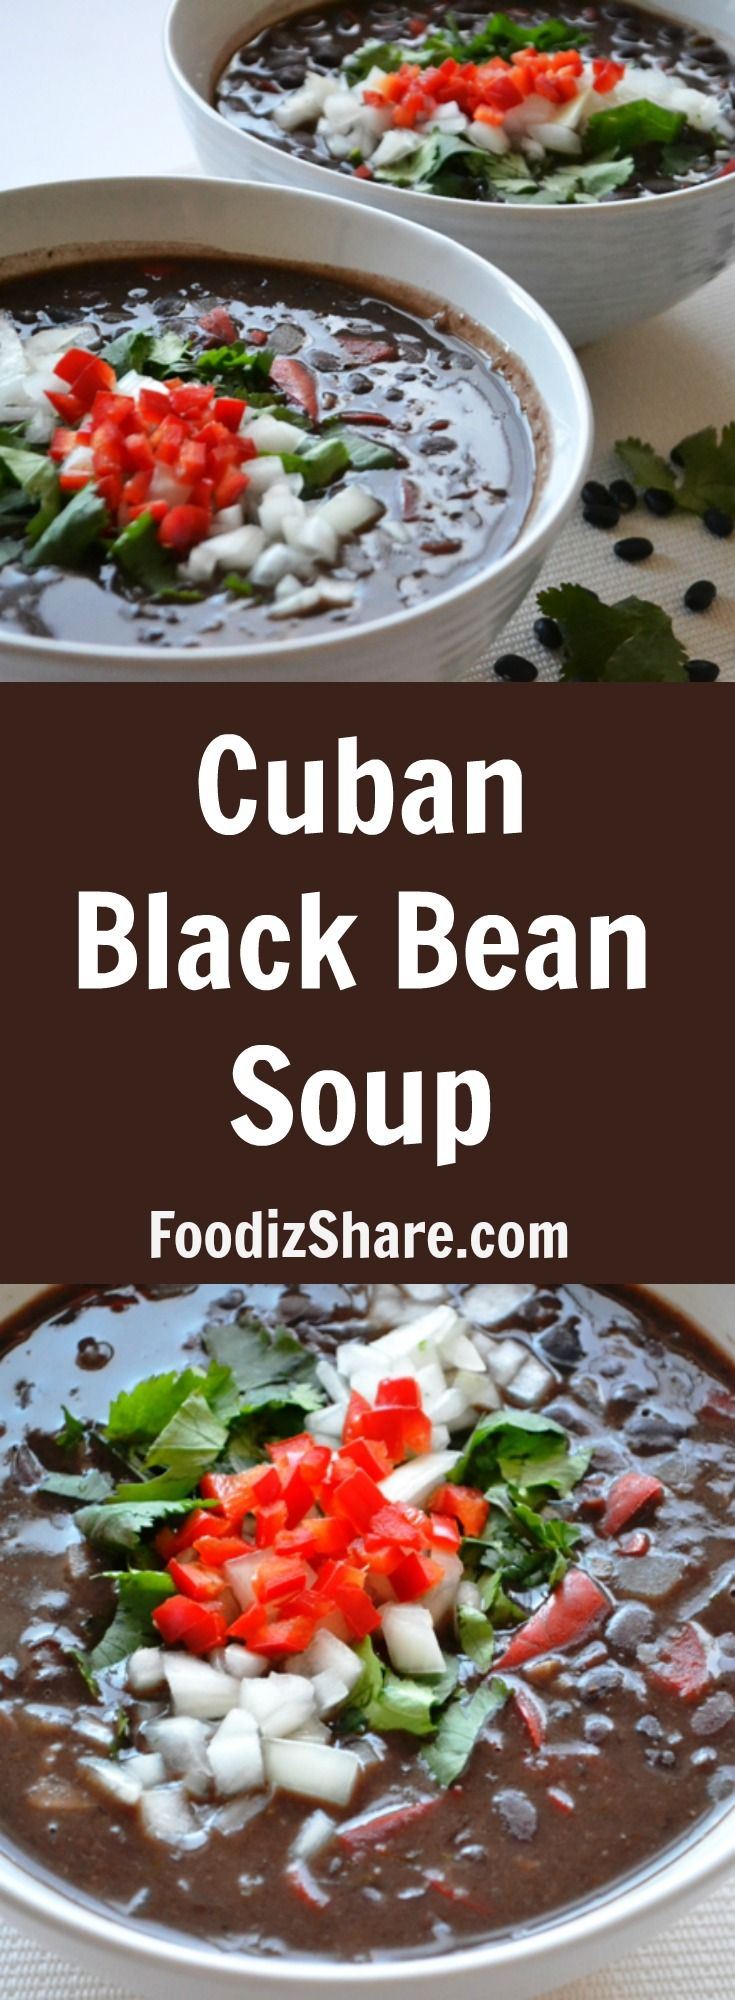 This hearty and delicious soup is a vegetarian version of the famous #Cuban black bean #soup. #vegetarian #comfortfood #healthy #food #recipes #easyrecipes #healthyfood